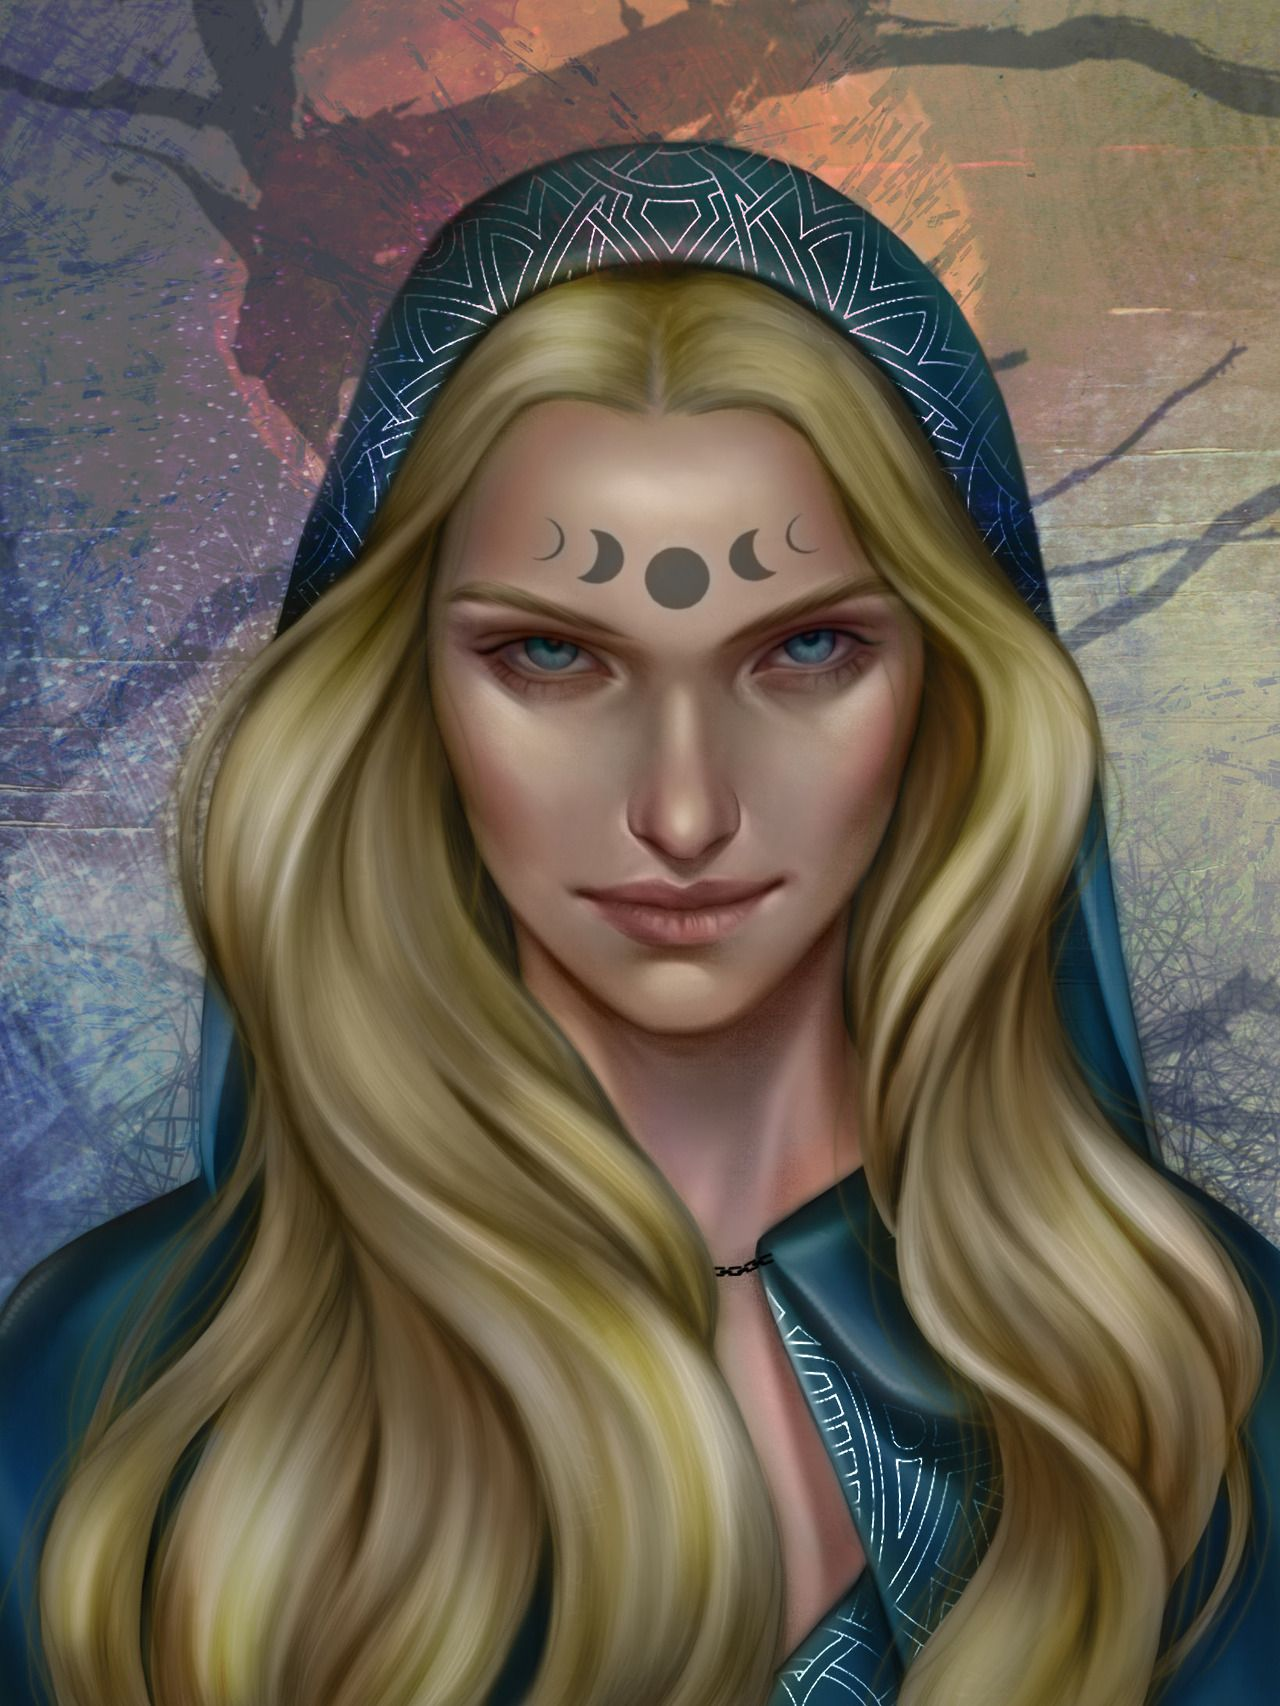 Sarah J Maas With Images A Court Of Mist And Fury Sarah J